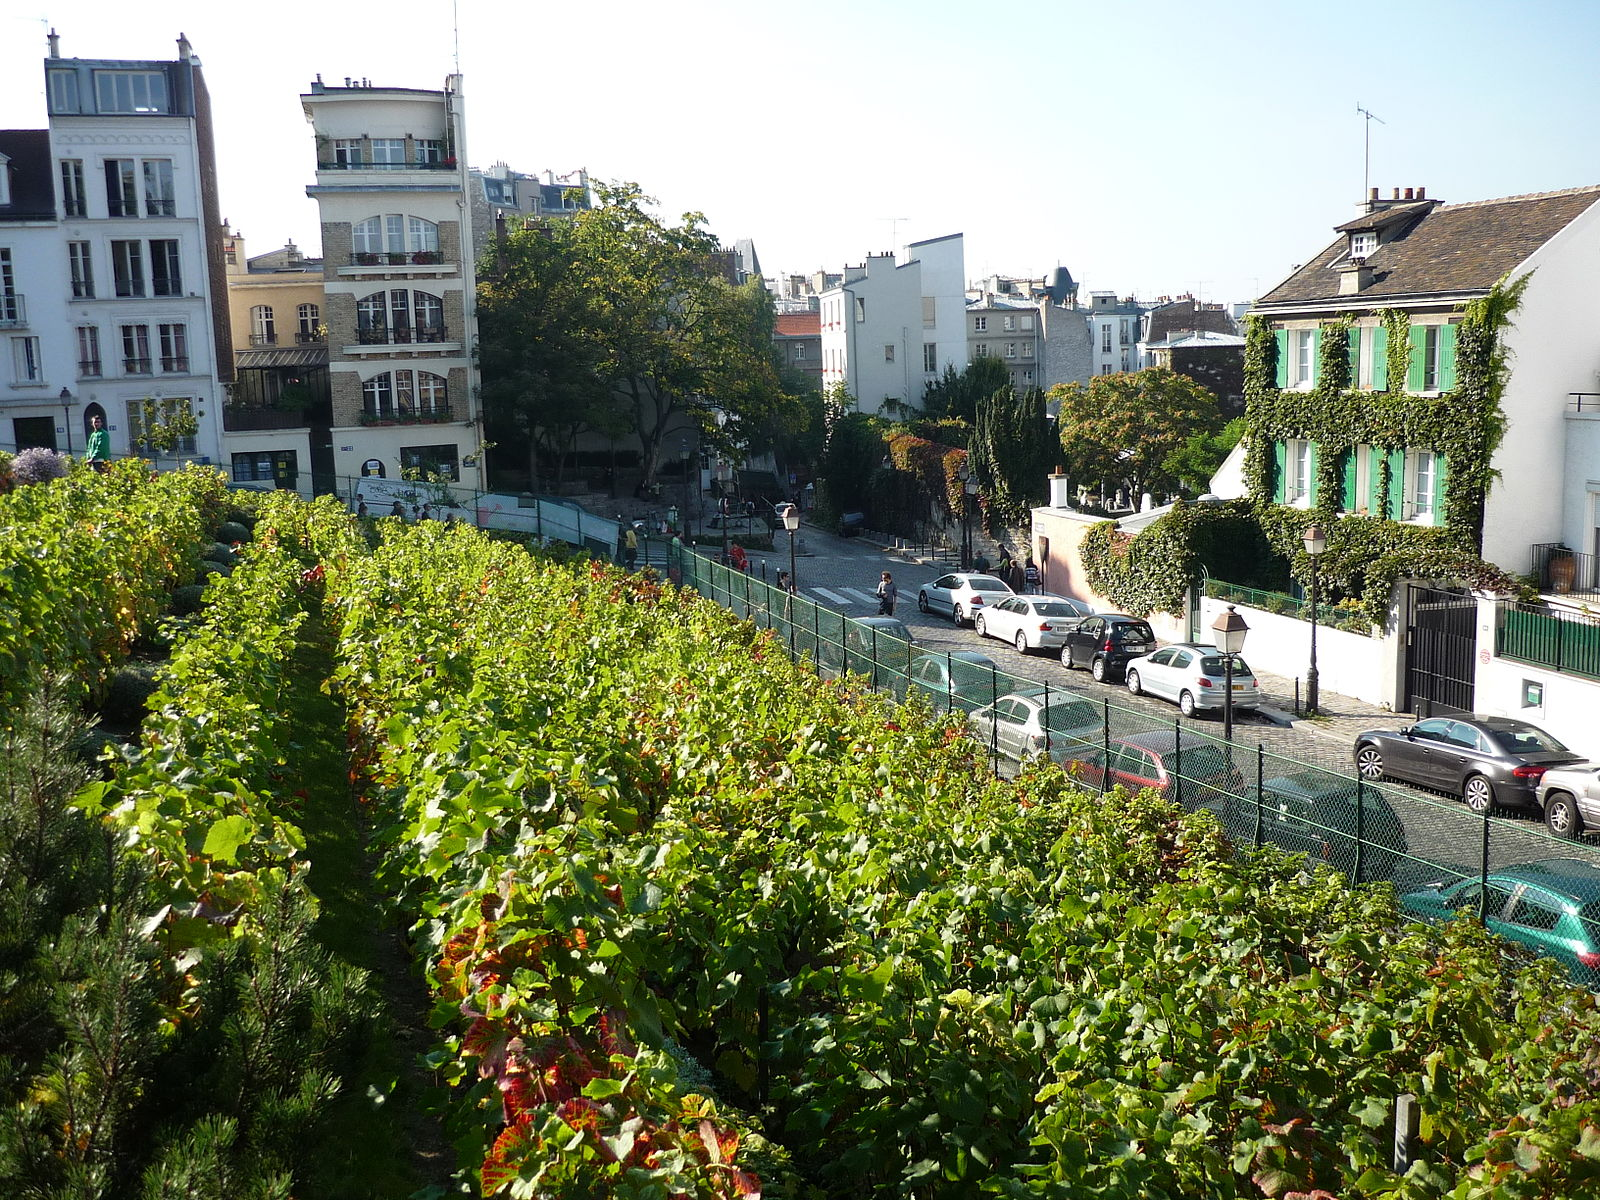 Basili [CC BY-SA 3.0 (https://creativecommons.org/licenses/by-sa/3.0)], Vigne de Montmartre, Michel Kalifa - Maison David